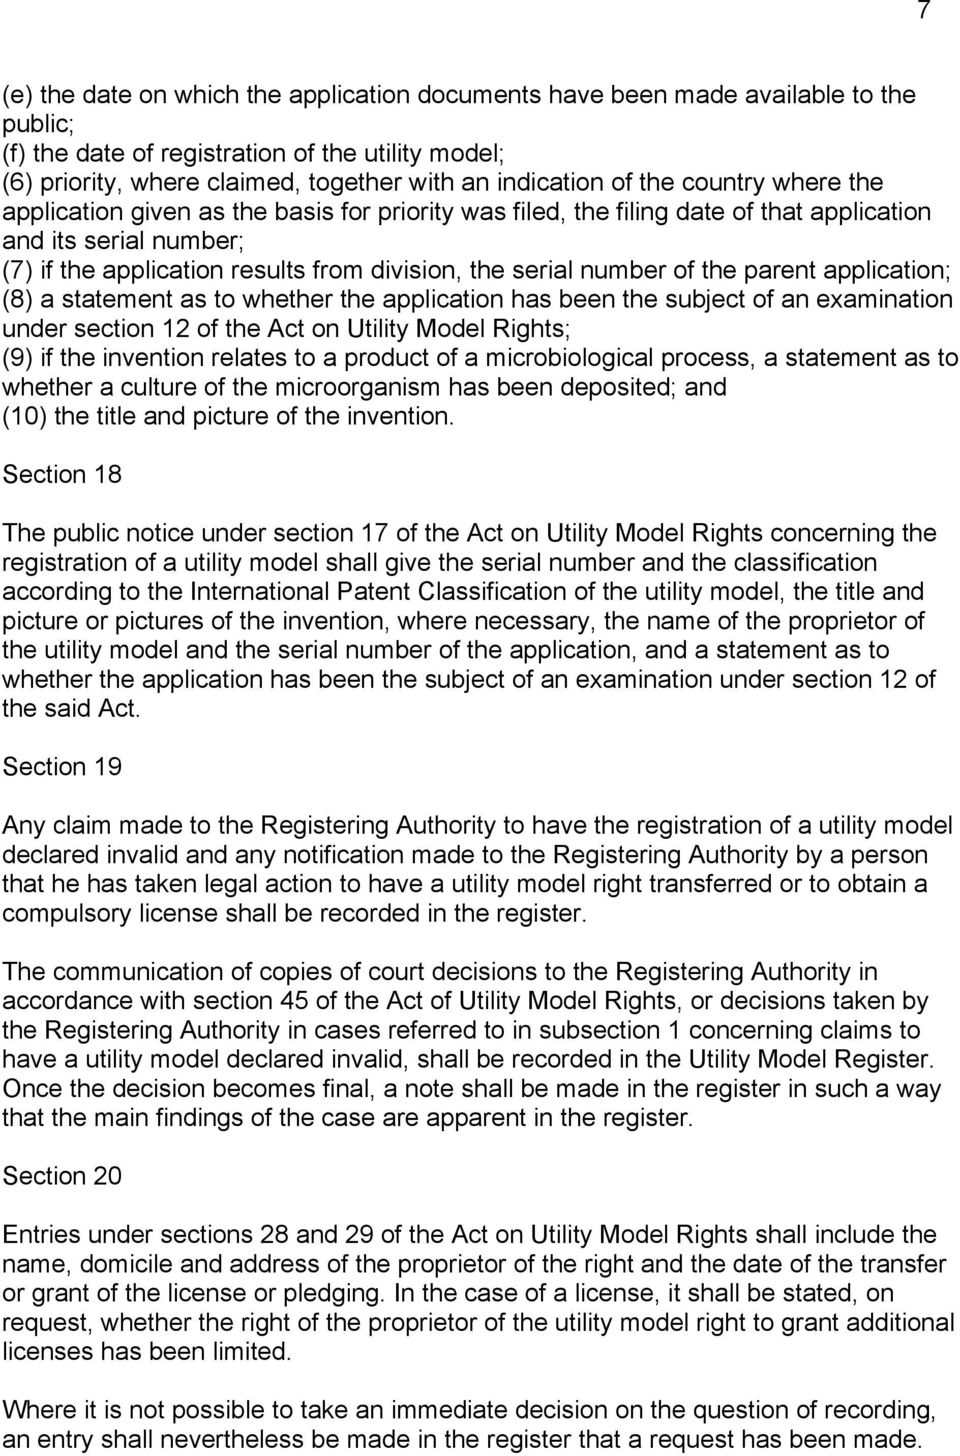 number of the parent application; (8) a statement as to whether the application has been the subject of an examination under section 12 of the Act on Utility Model Rights; (9) if the invention